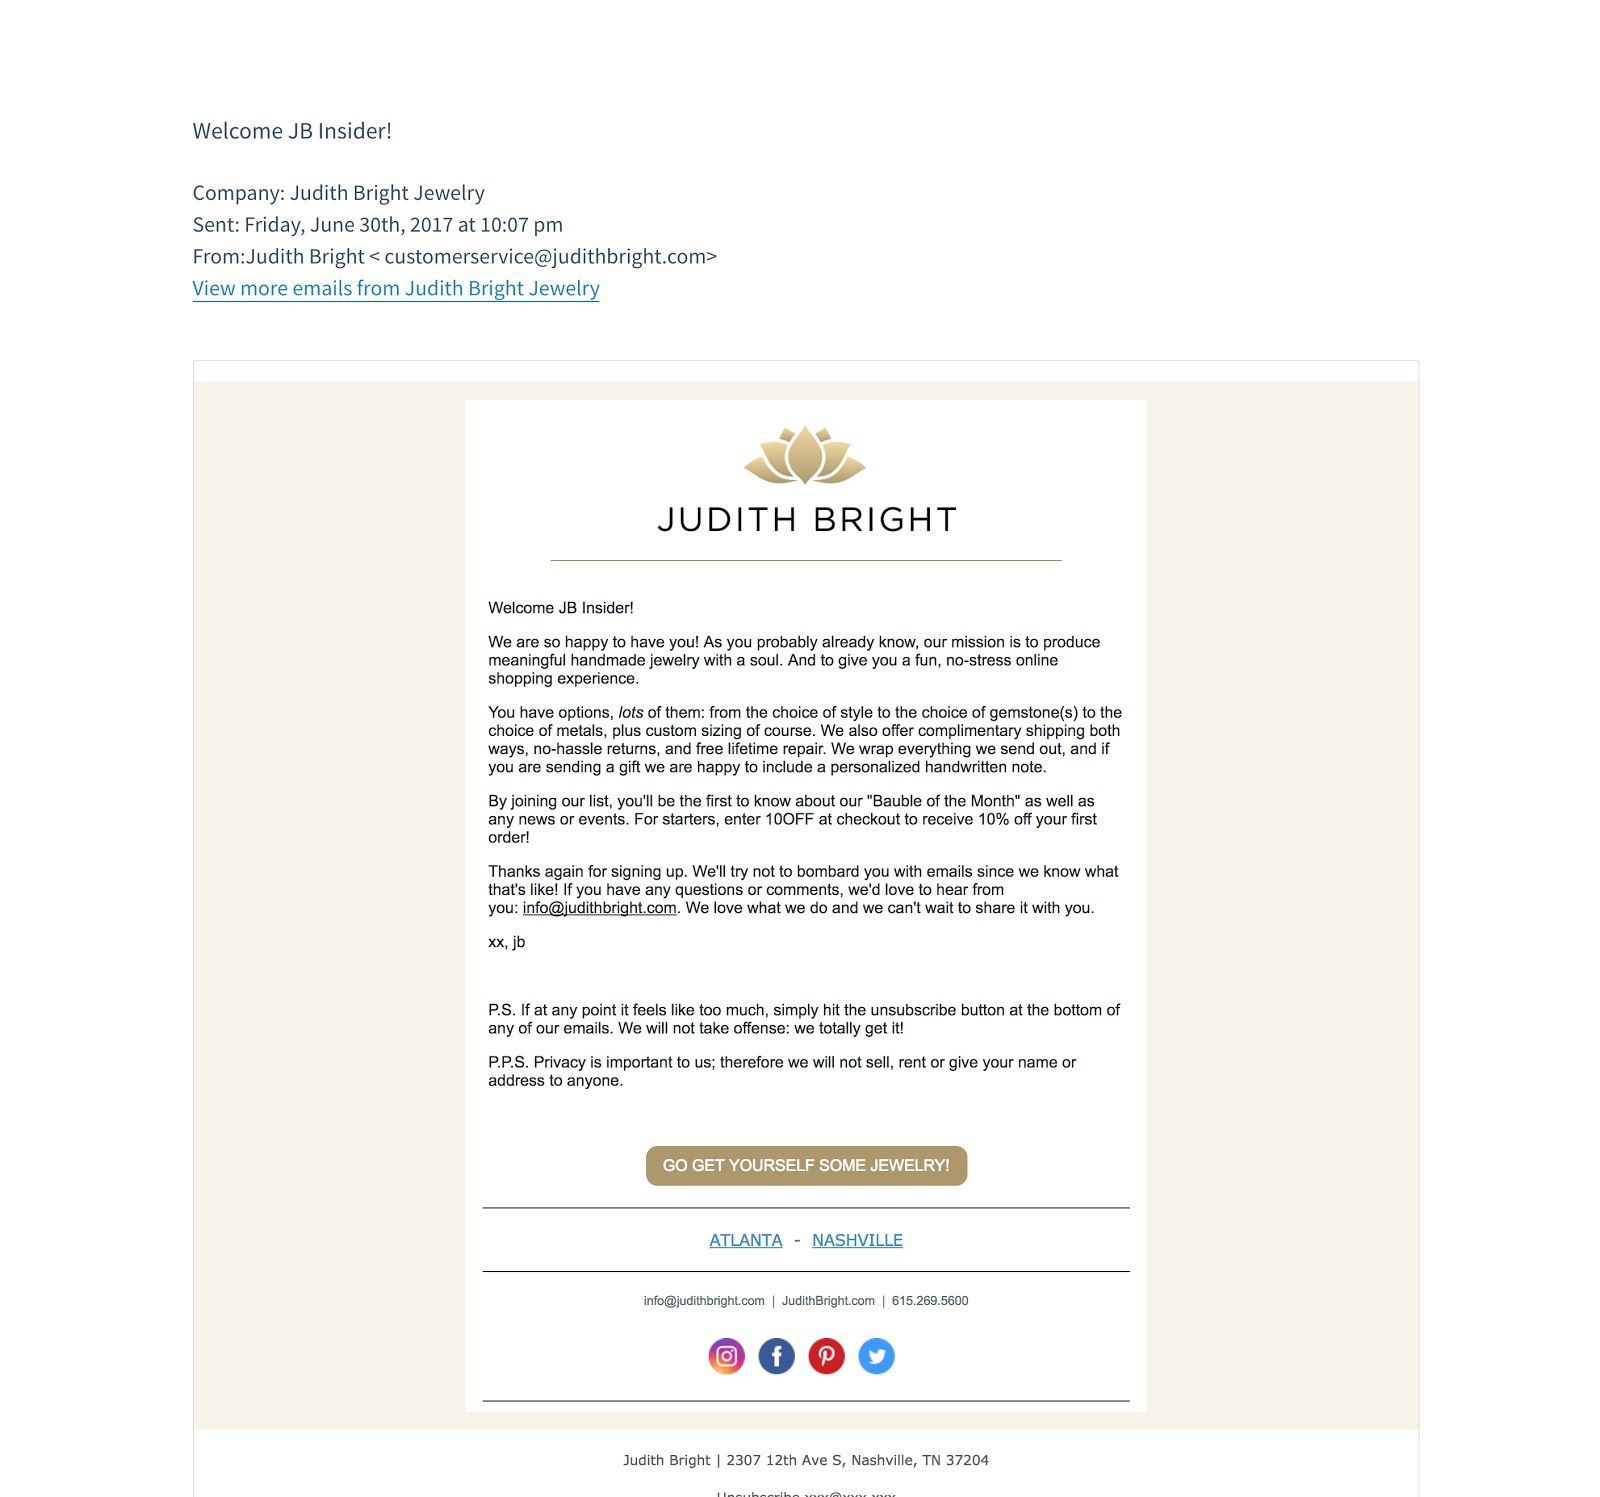 010 Marvelou Join Our Mailing List Template High Definition  EmailFull